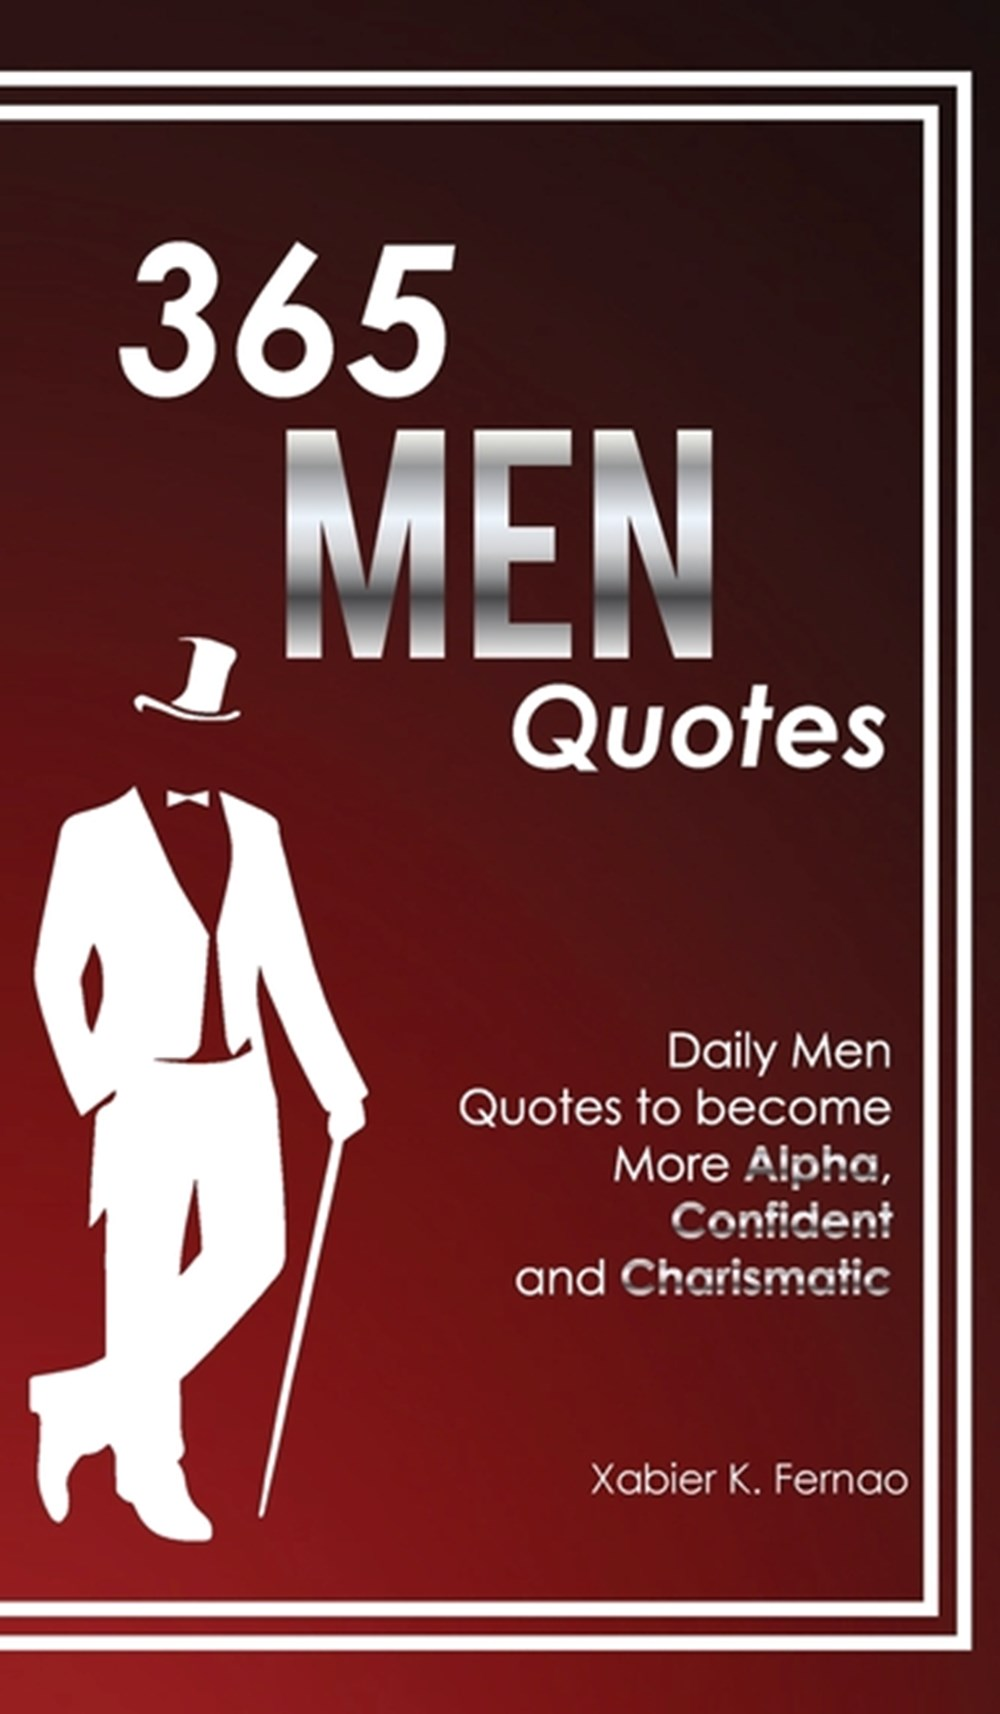 365 Men Quotes Daily Men Quotes to Become More Alpha, Confident and Charismatic